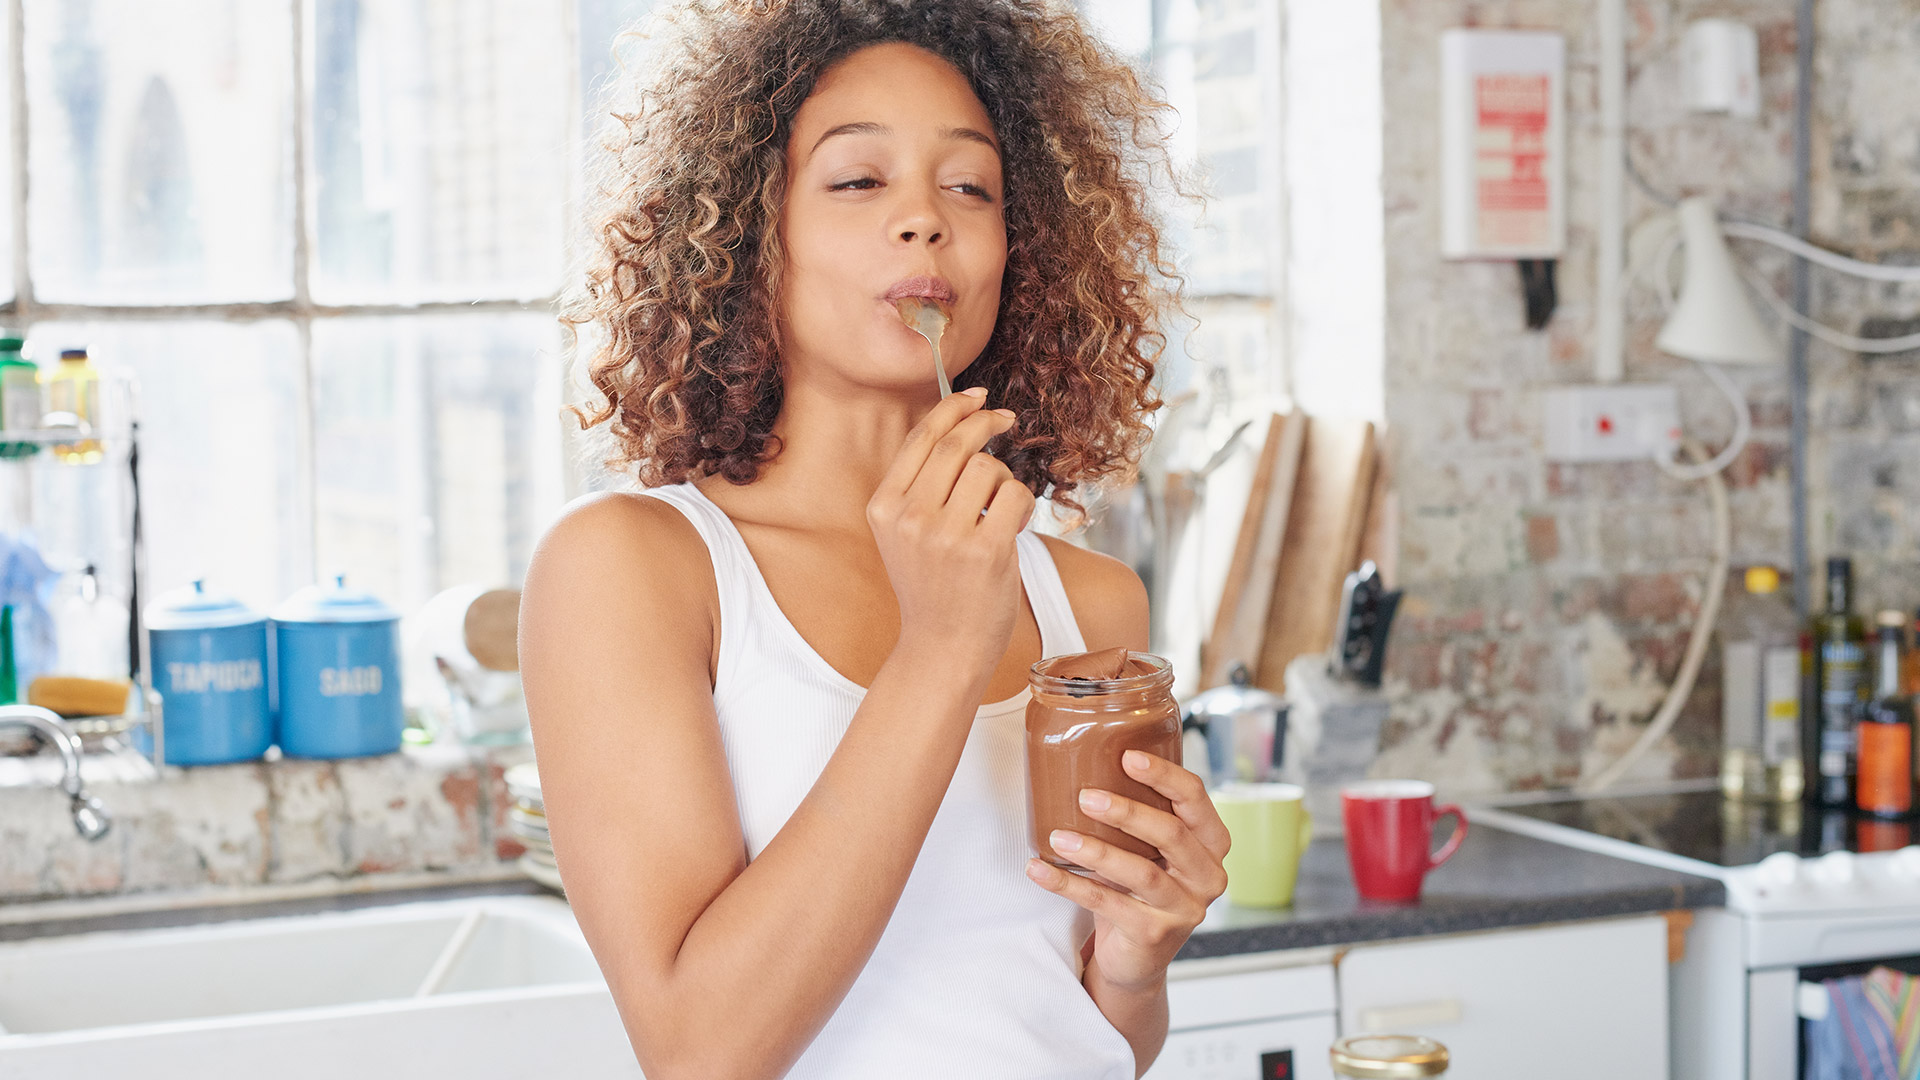 Does Eating Chocolate Really Cause Acne Breakouts and Bad Skin?